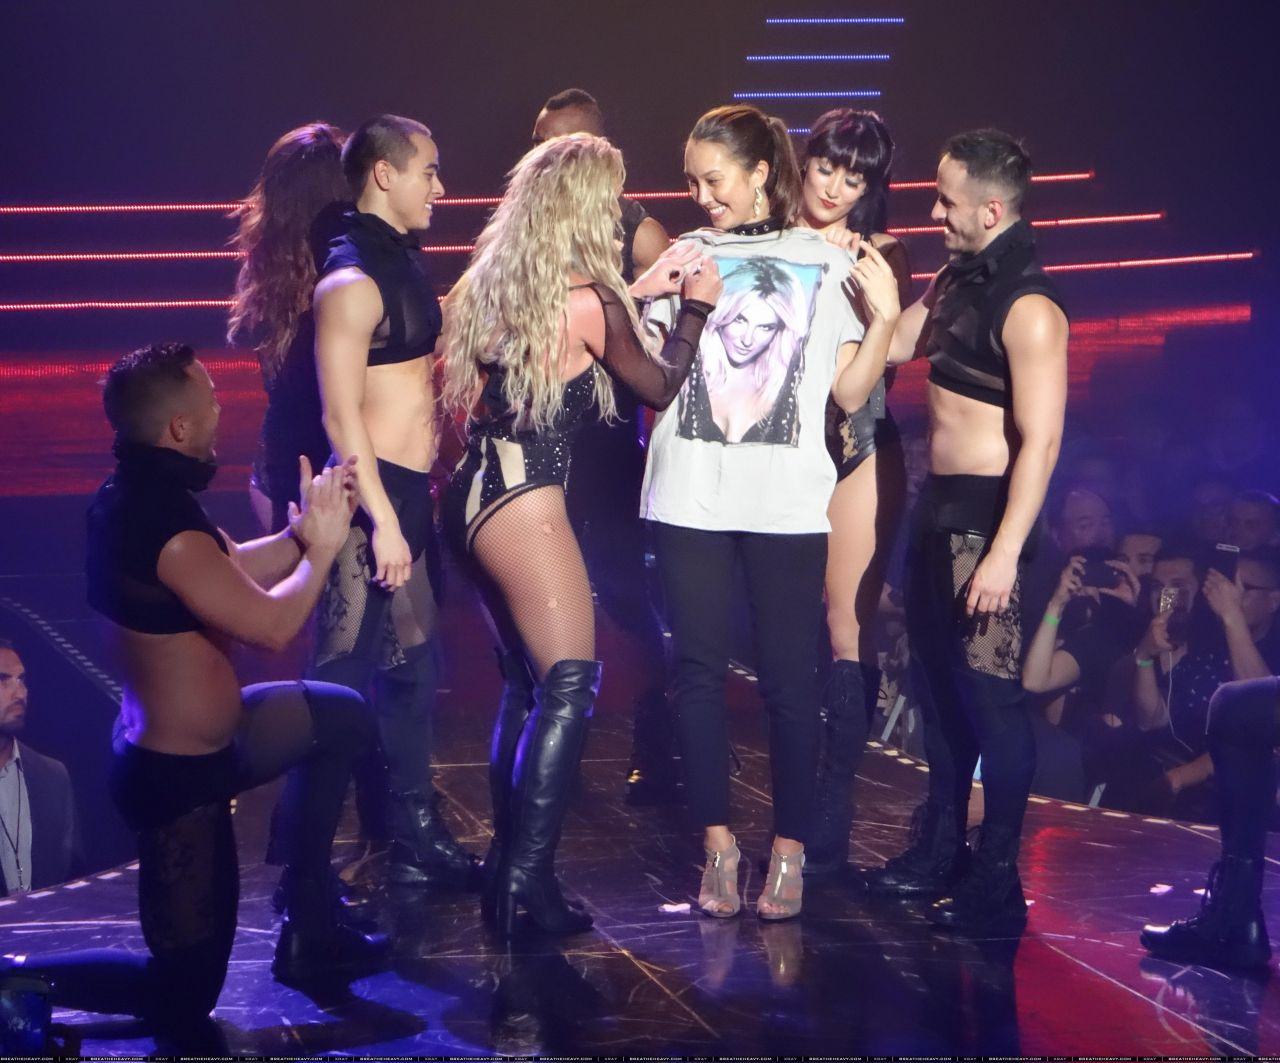 Britney Spears Performing in Las Vegas, April 2016 Britney Spears Las Vegas